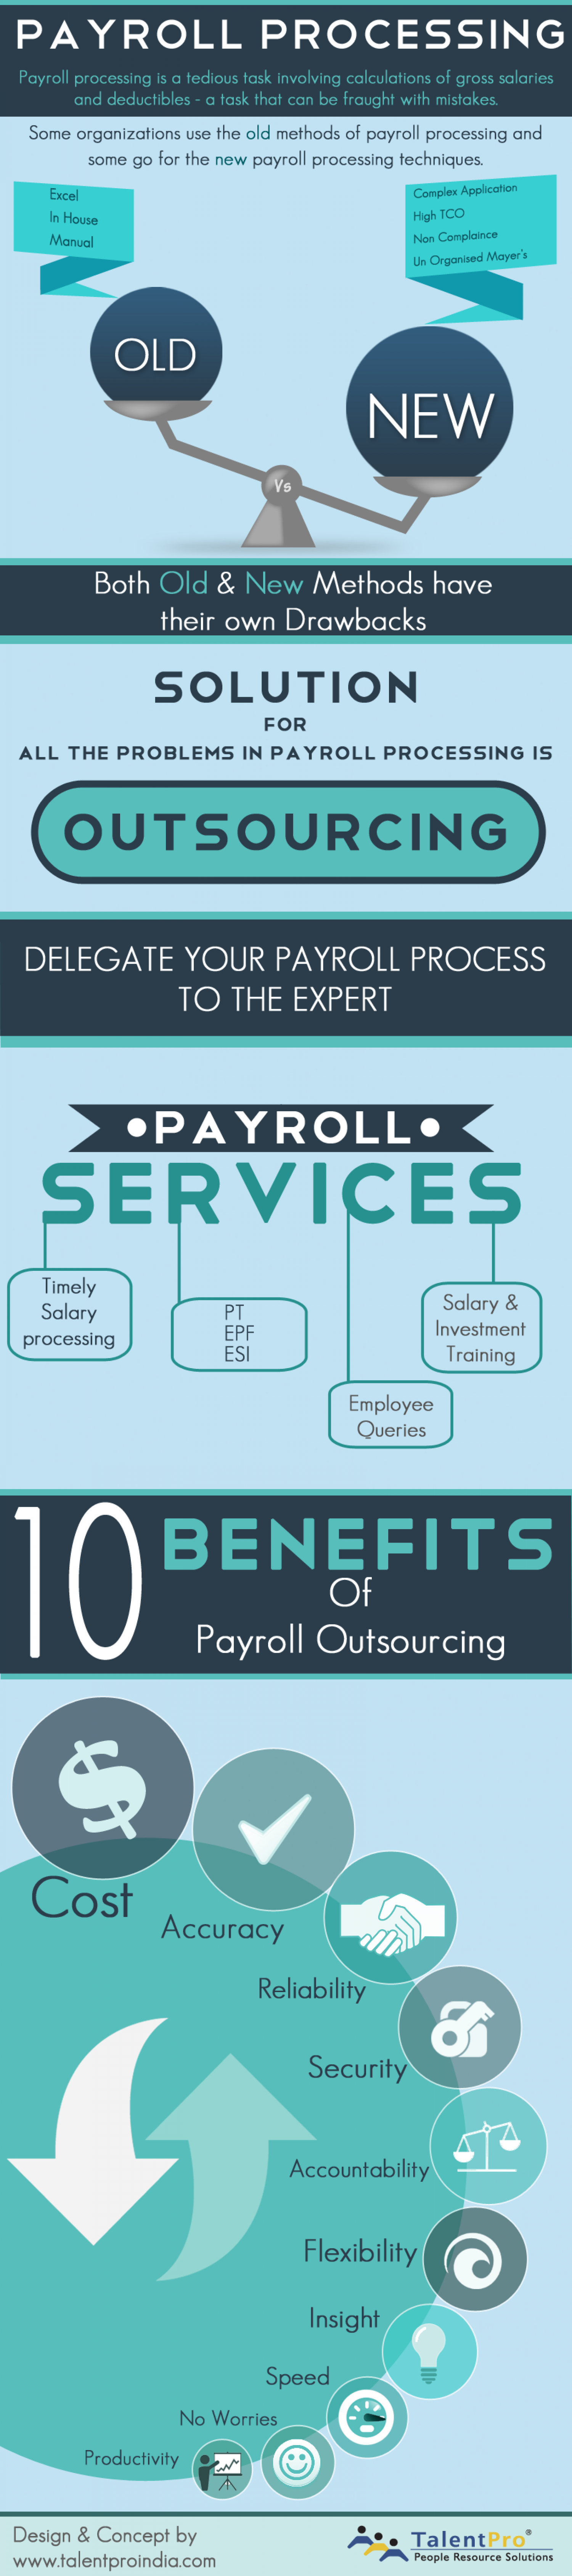 Payroll Process - Outsourcing & Benefits Infographic